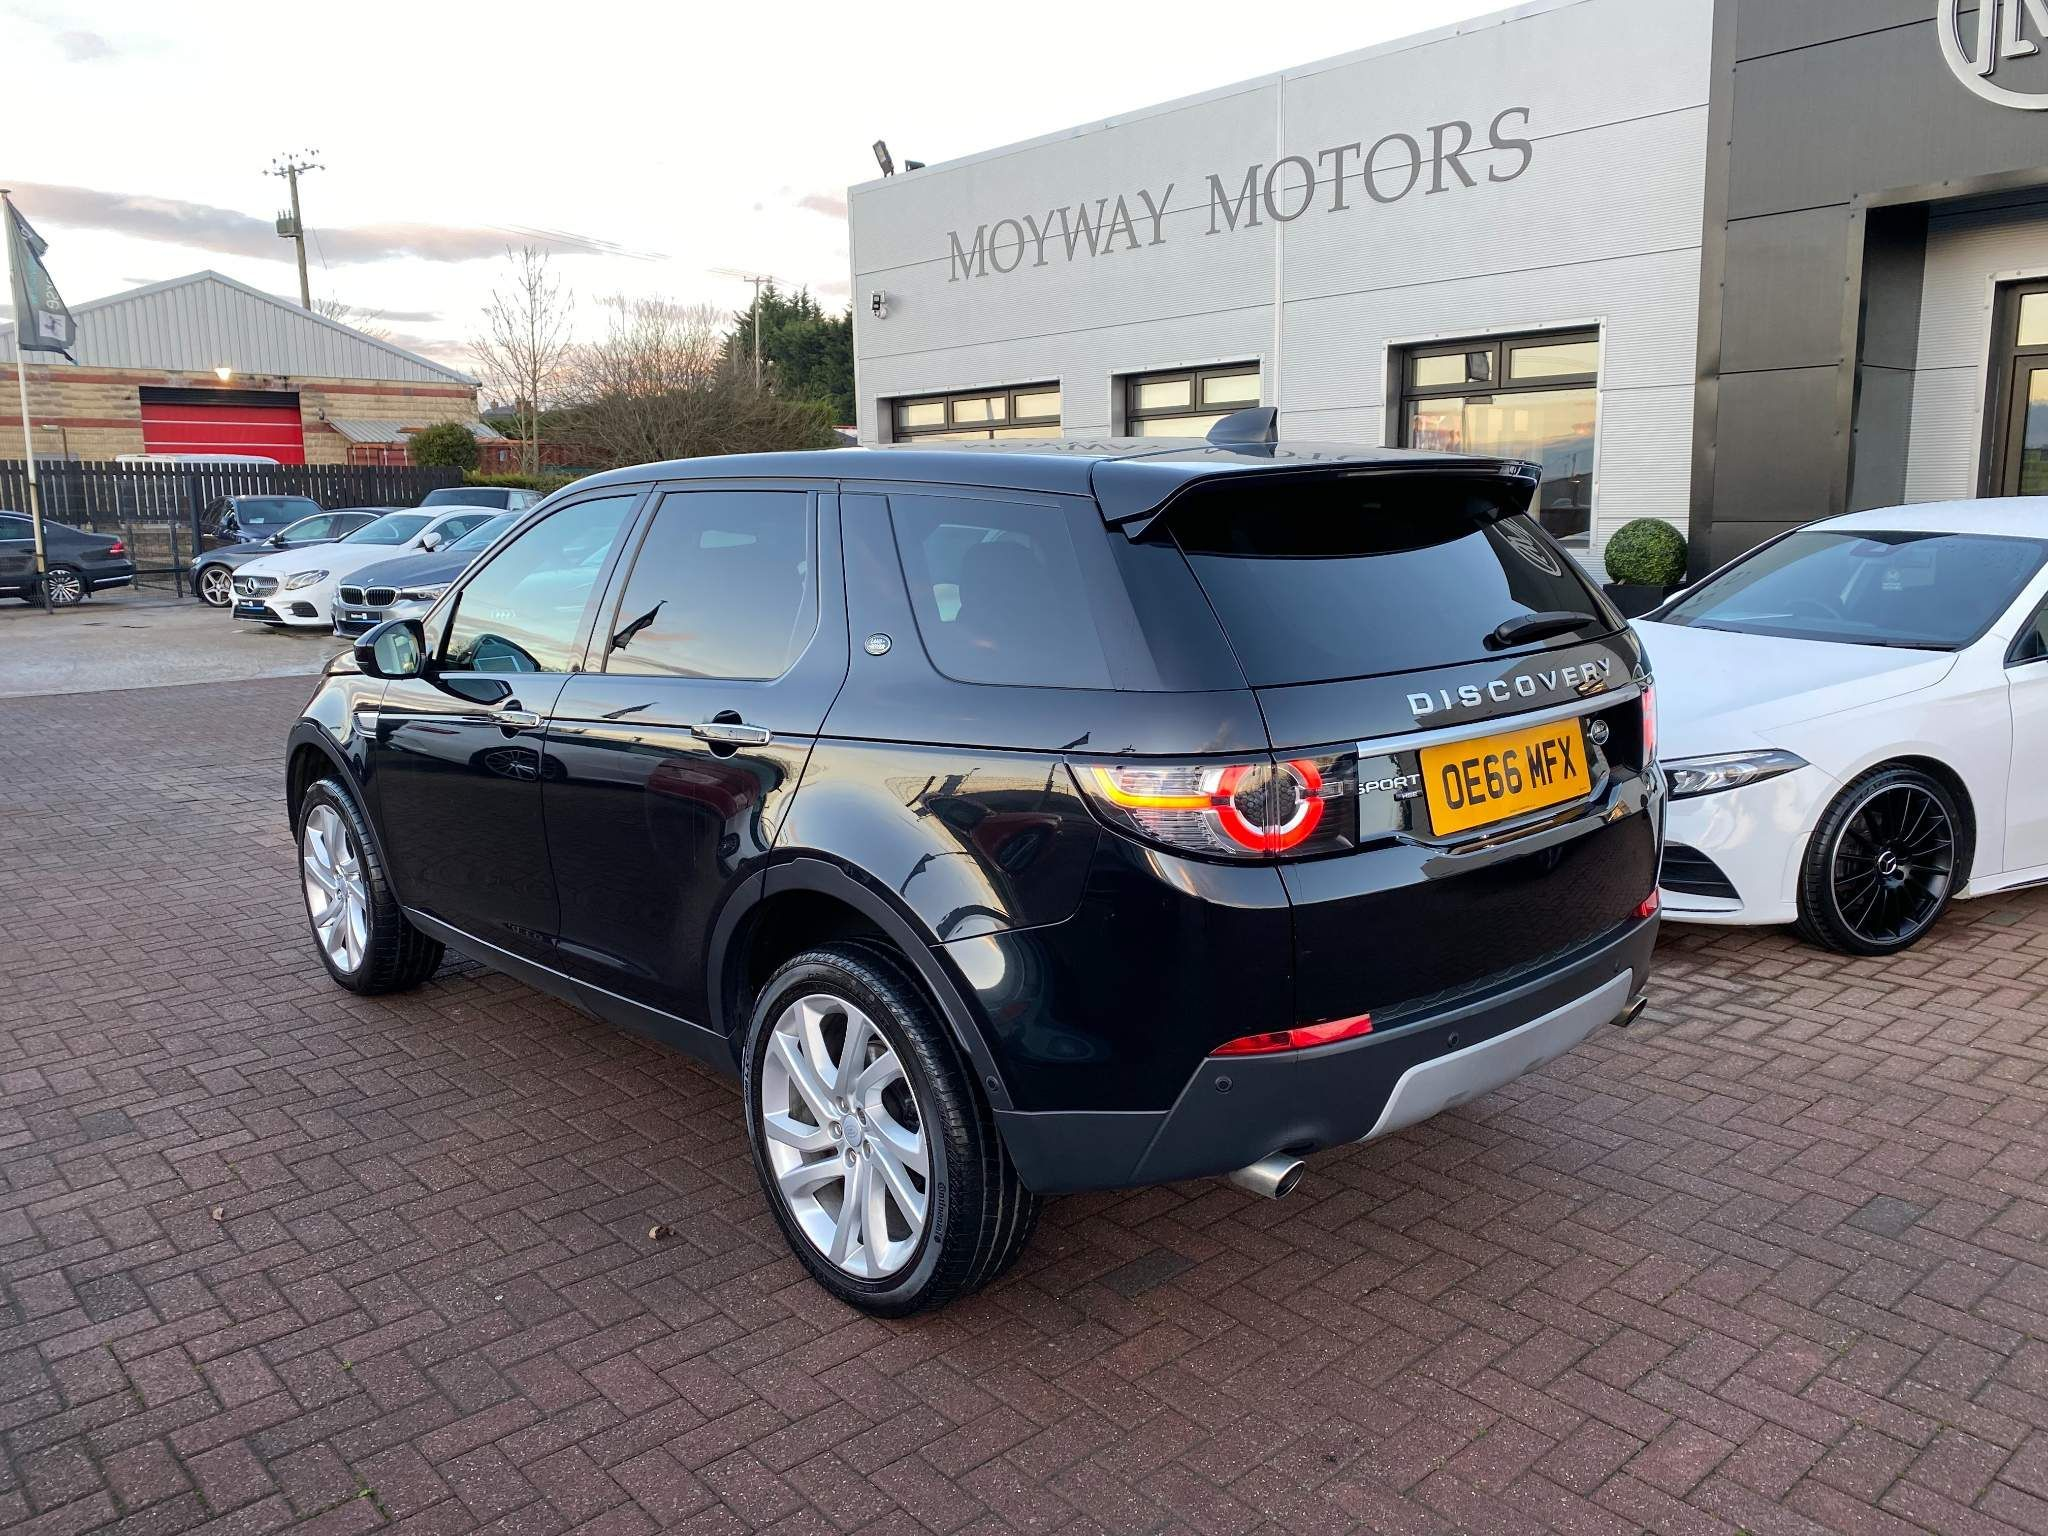 2017 Land Rover Discovery Sport 2.0 TD4 HSE Luxury Auto 4WD (s/s) 5dr Diesel Automatic – Moyway Motors Dungannon full